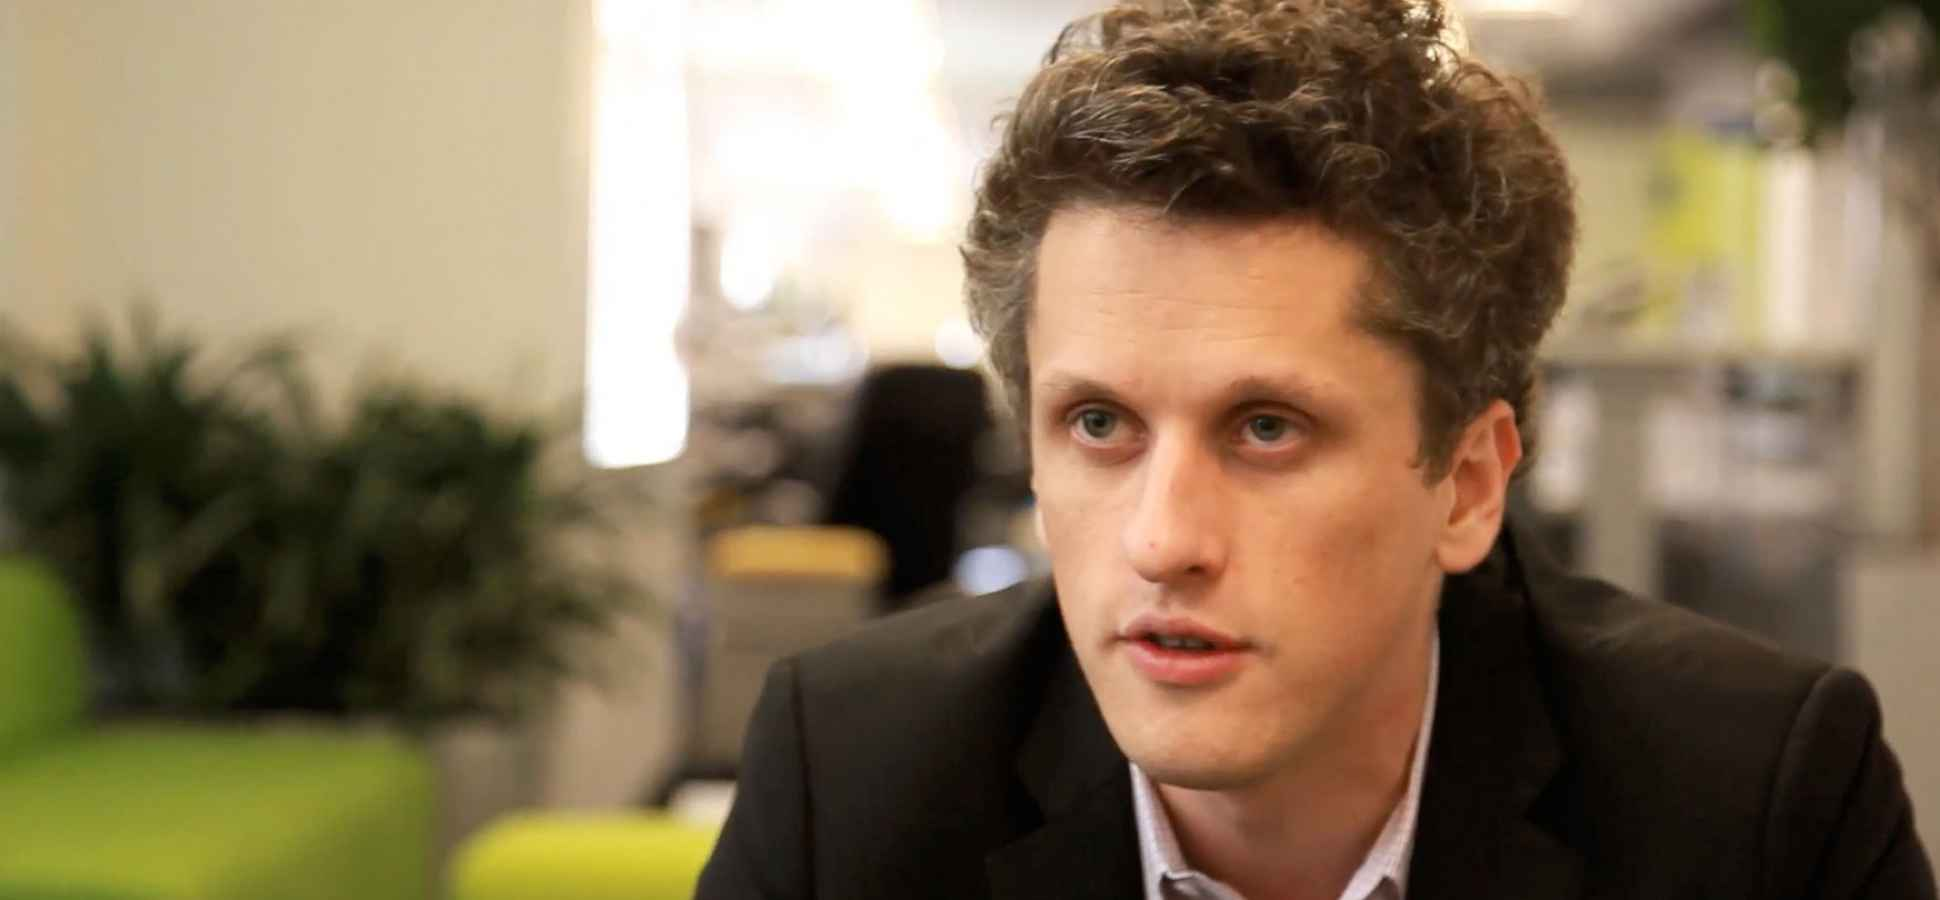 Box CEO Aaron Levie Describes His Vision of an Instant-Access Future